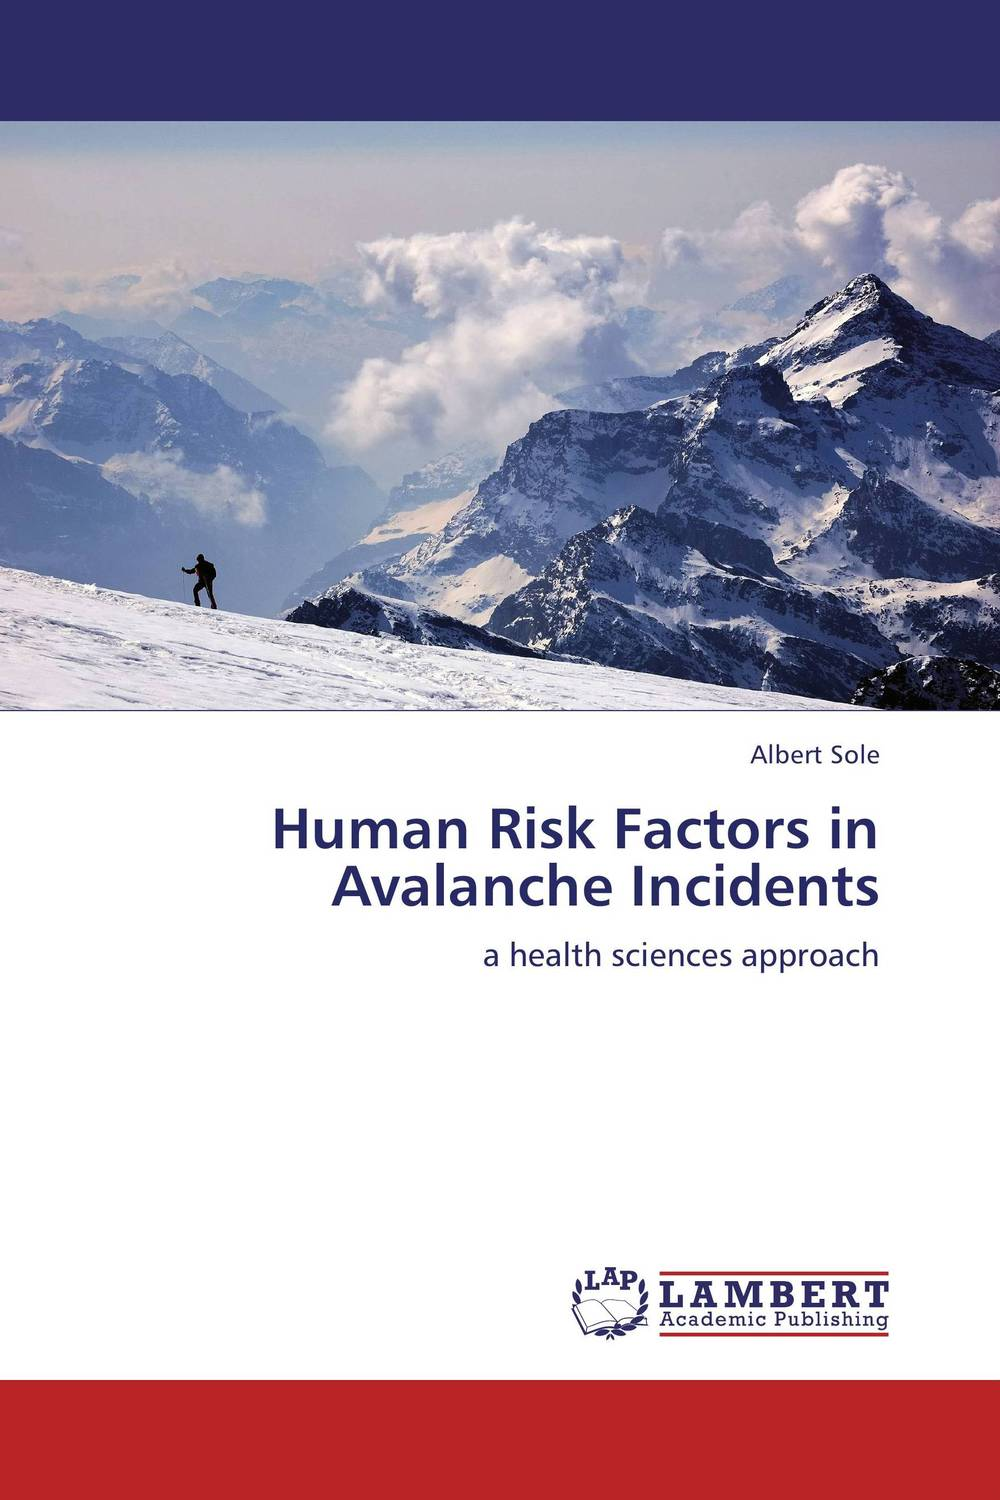 Human Risk Factors in Avalanche Incidents abo and genetic risk factors associated with venous thrombosis